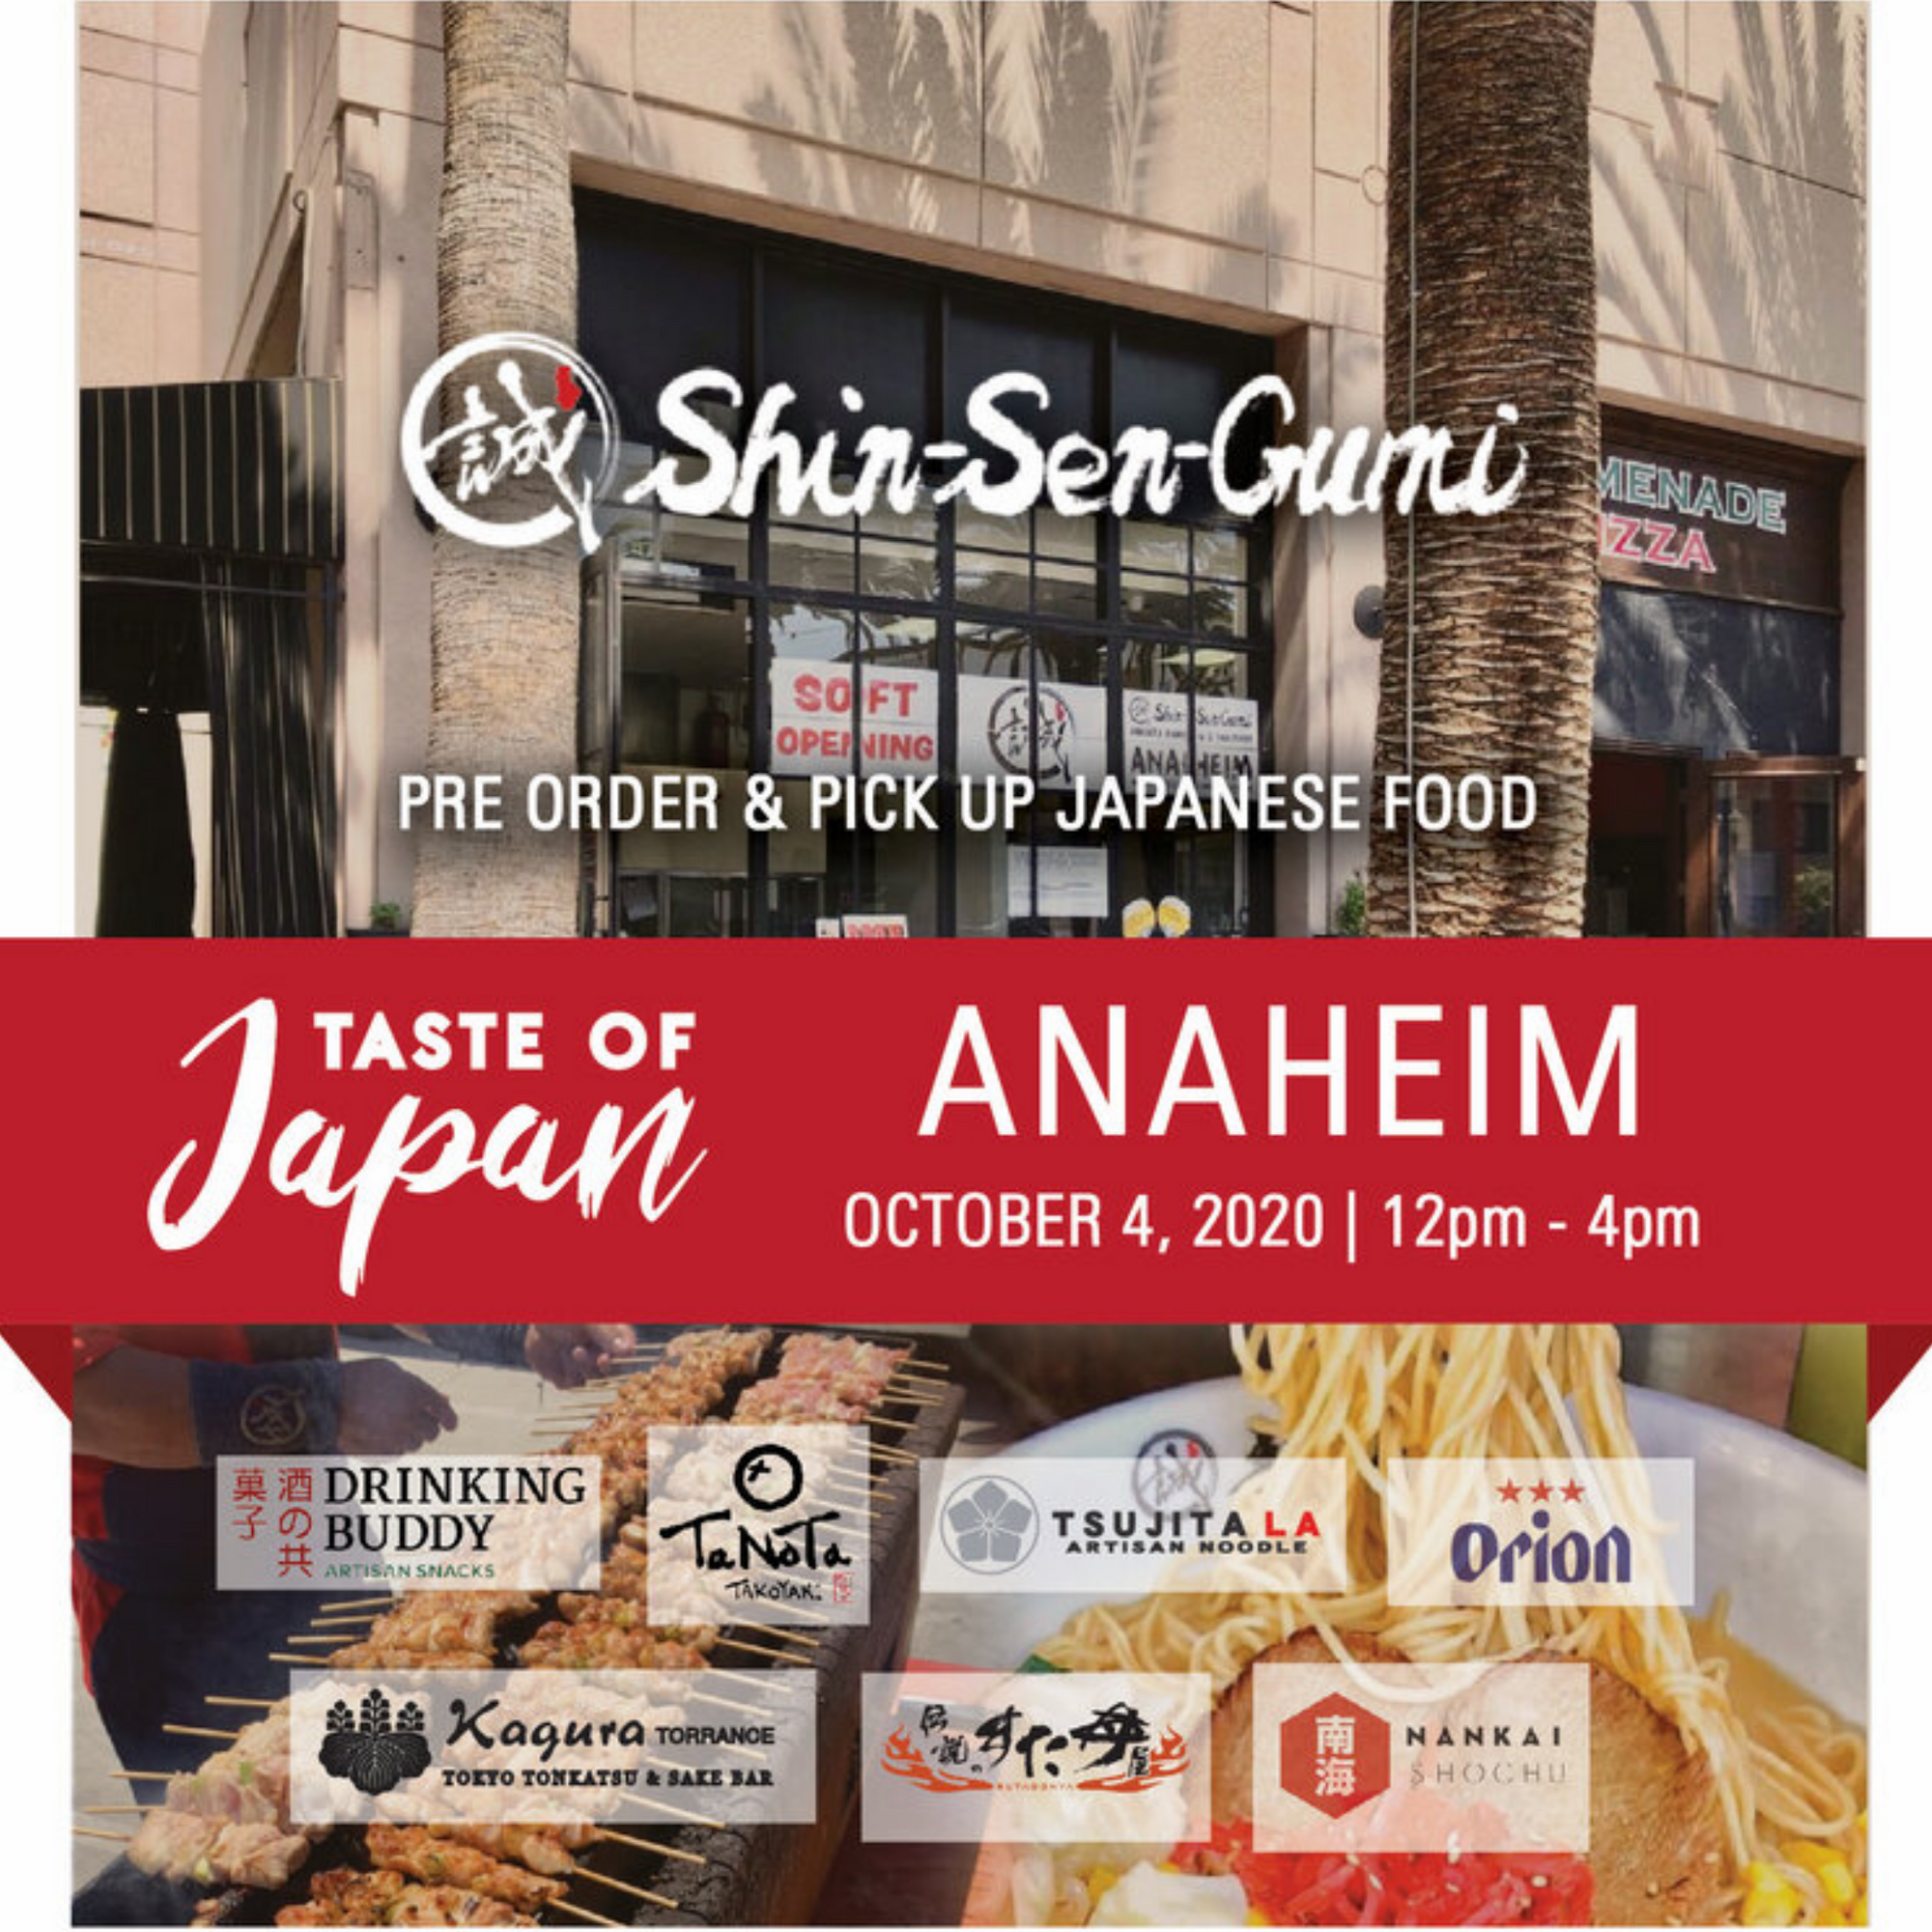 Pop-Up Event: Shinsengumi Anaheim | Sunday, October 4, 2020 | 12:00pm - 4:00pm